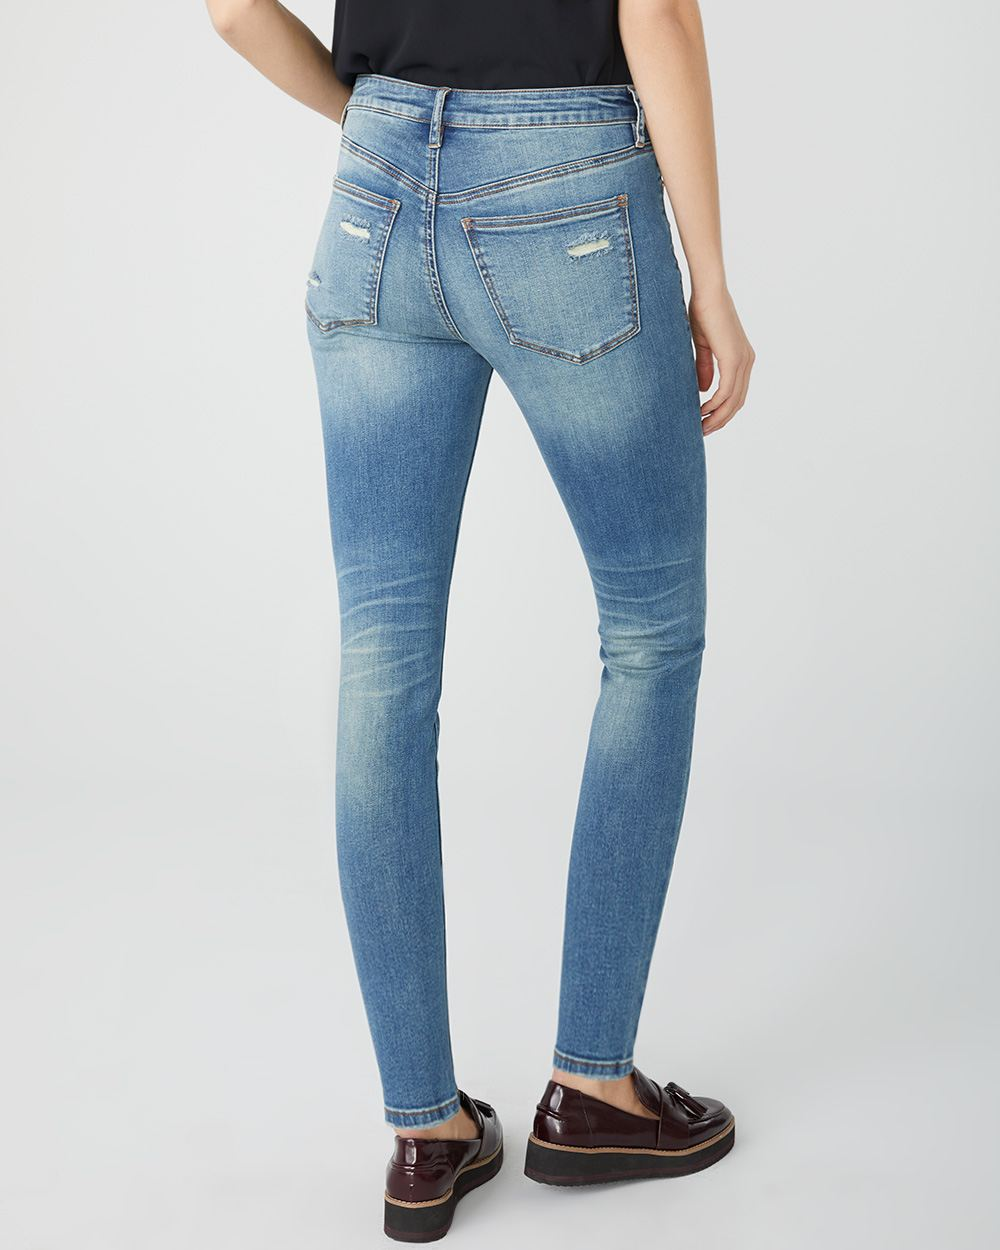 Mid-rise Sculpting skinny jeans in distressed denim